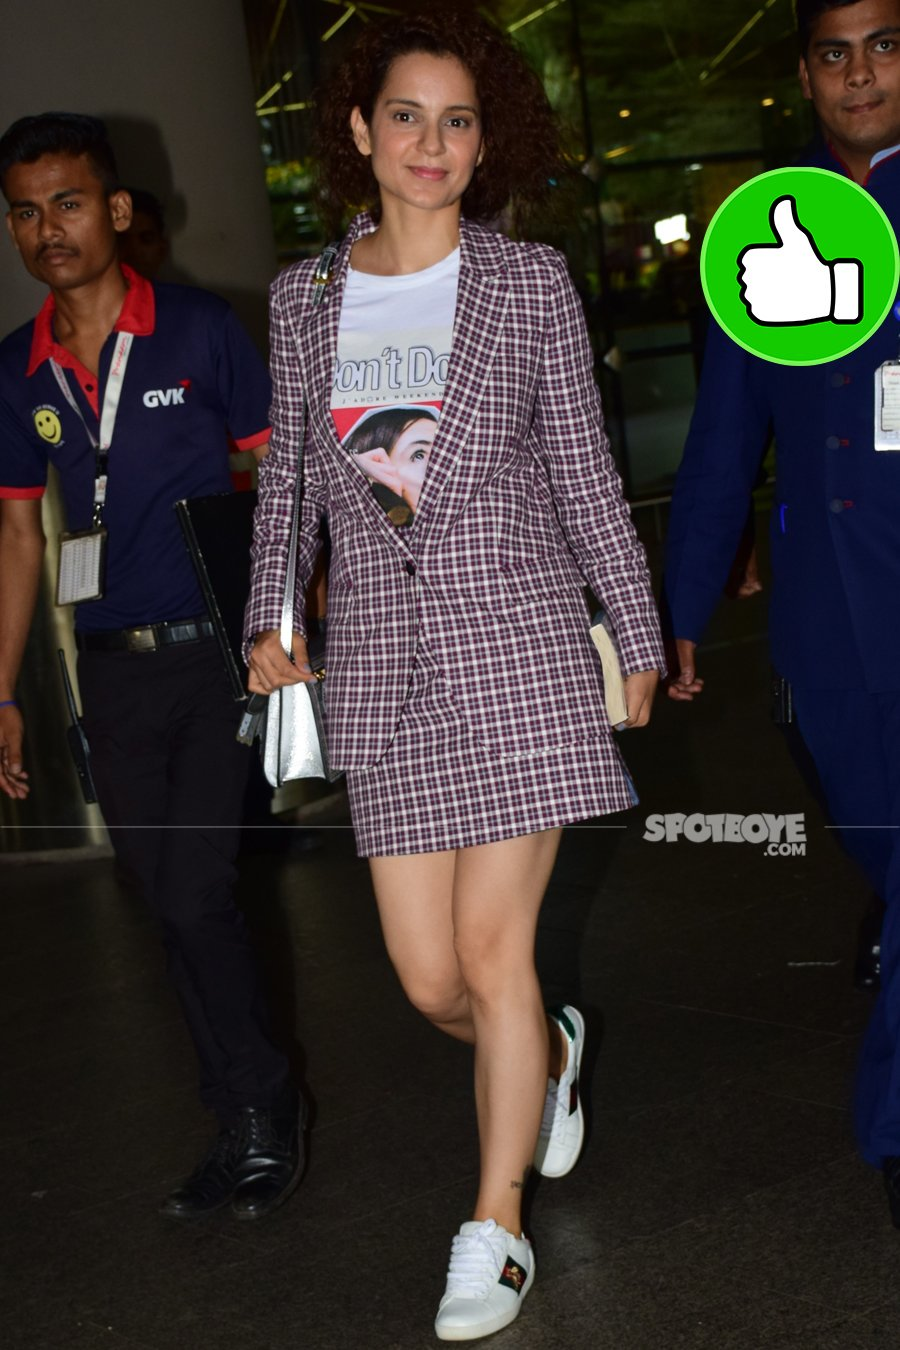 kangana ranaut at the airport